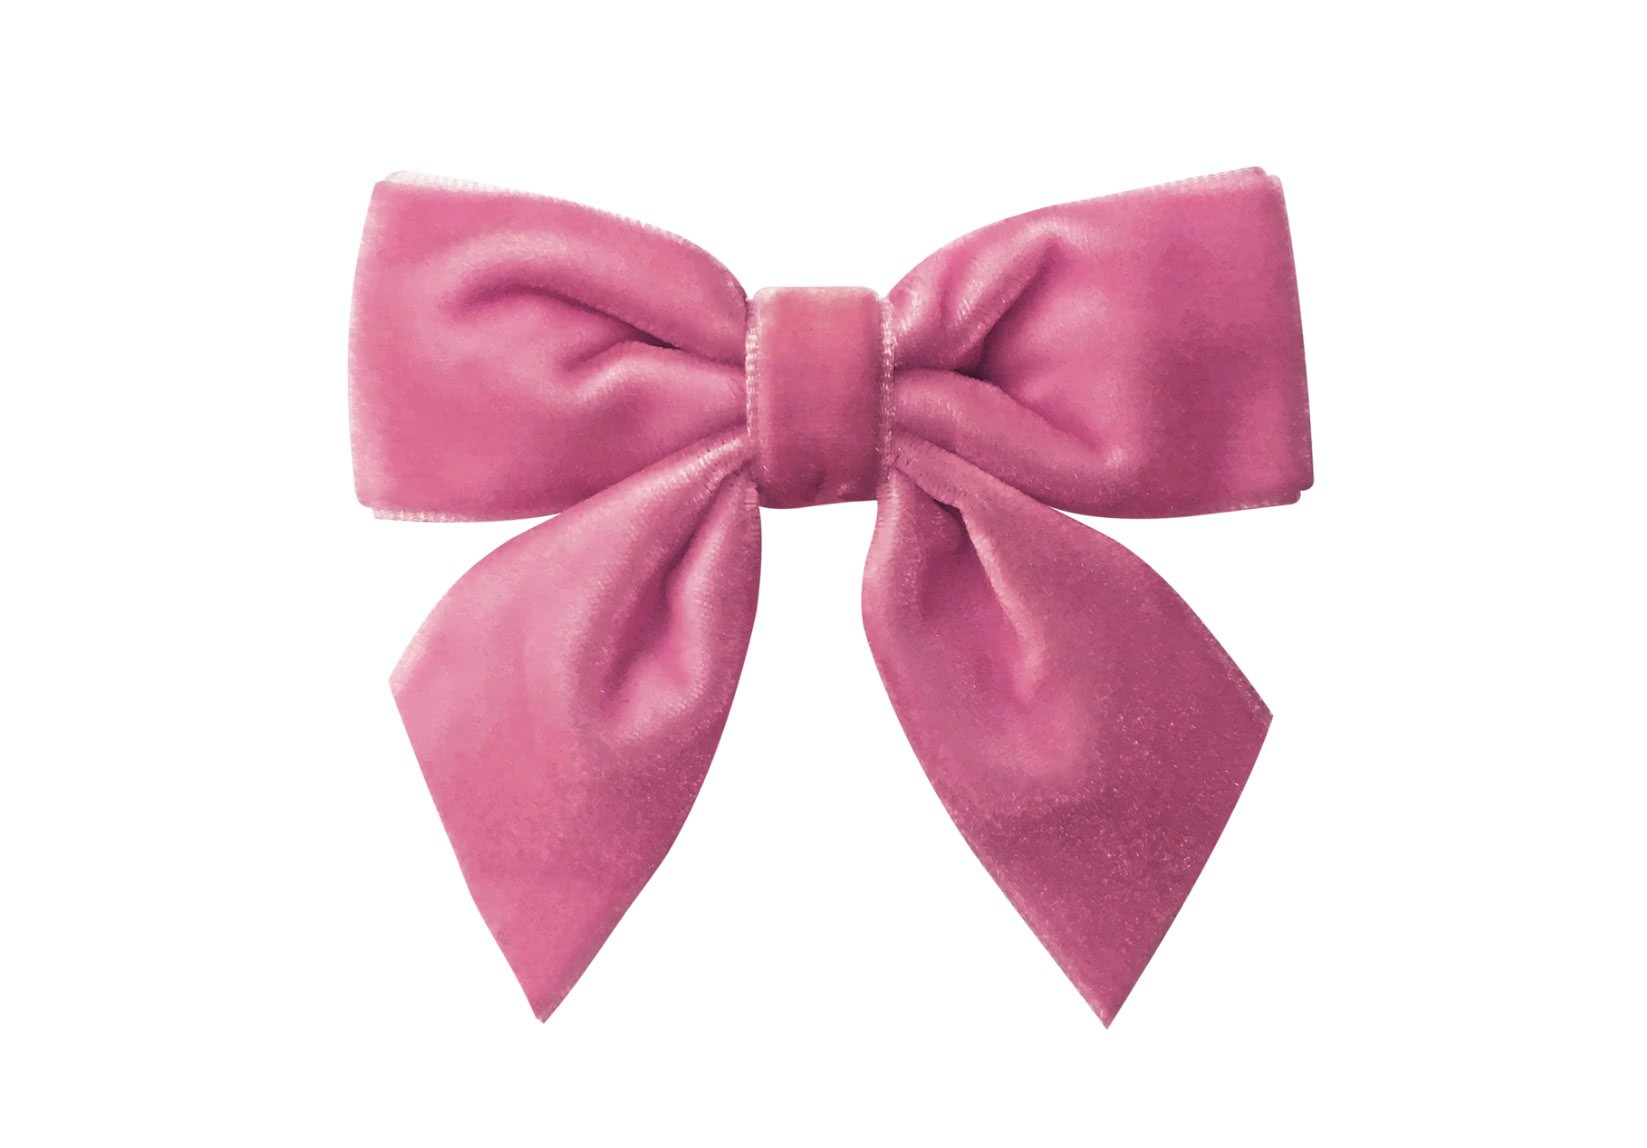 Medium Bowtie with Tails – Alligator Clip